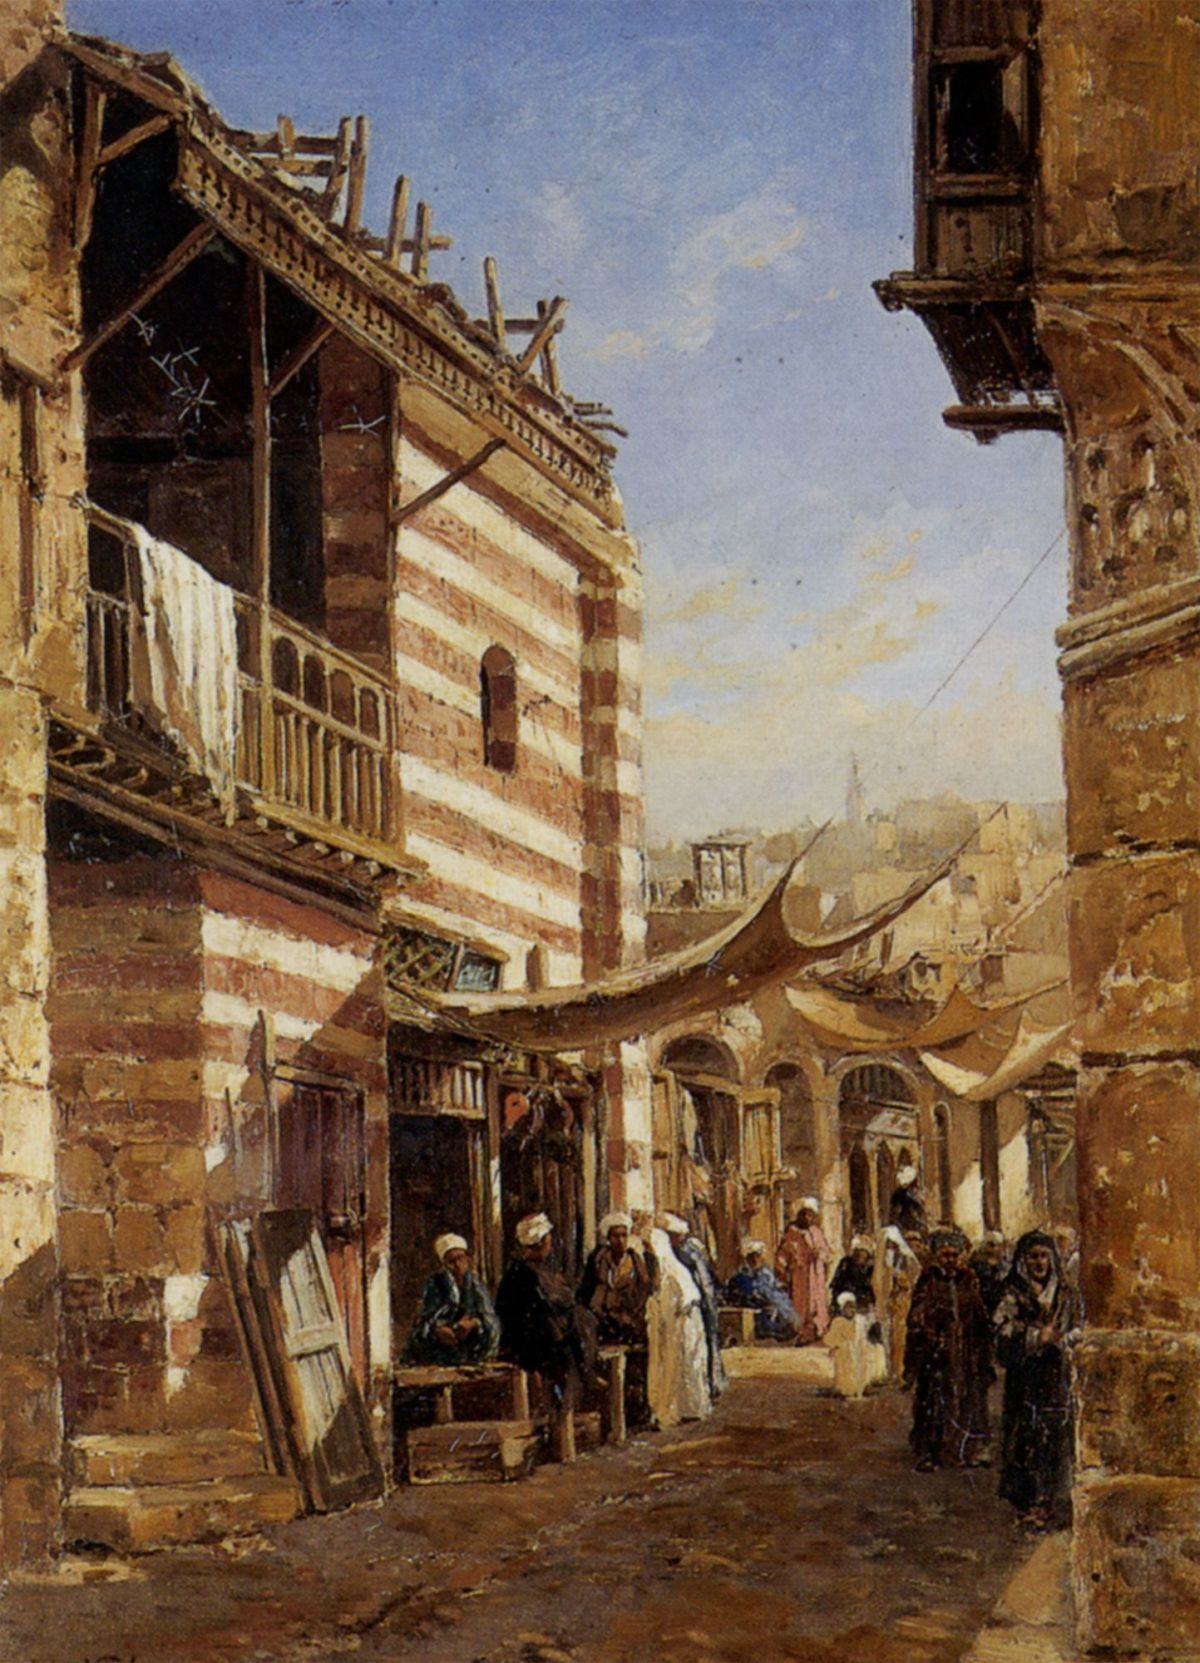 The School near the Babies Sharouri Cairo by John Varley Junior